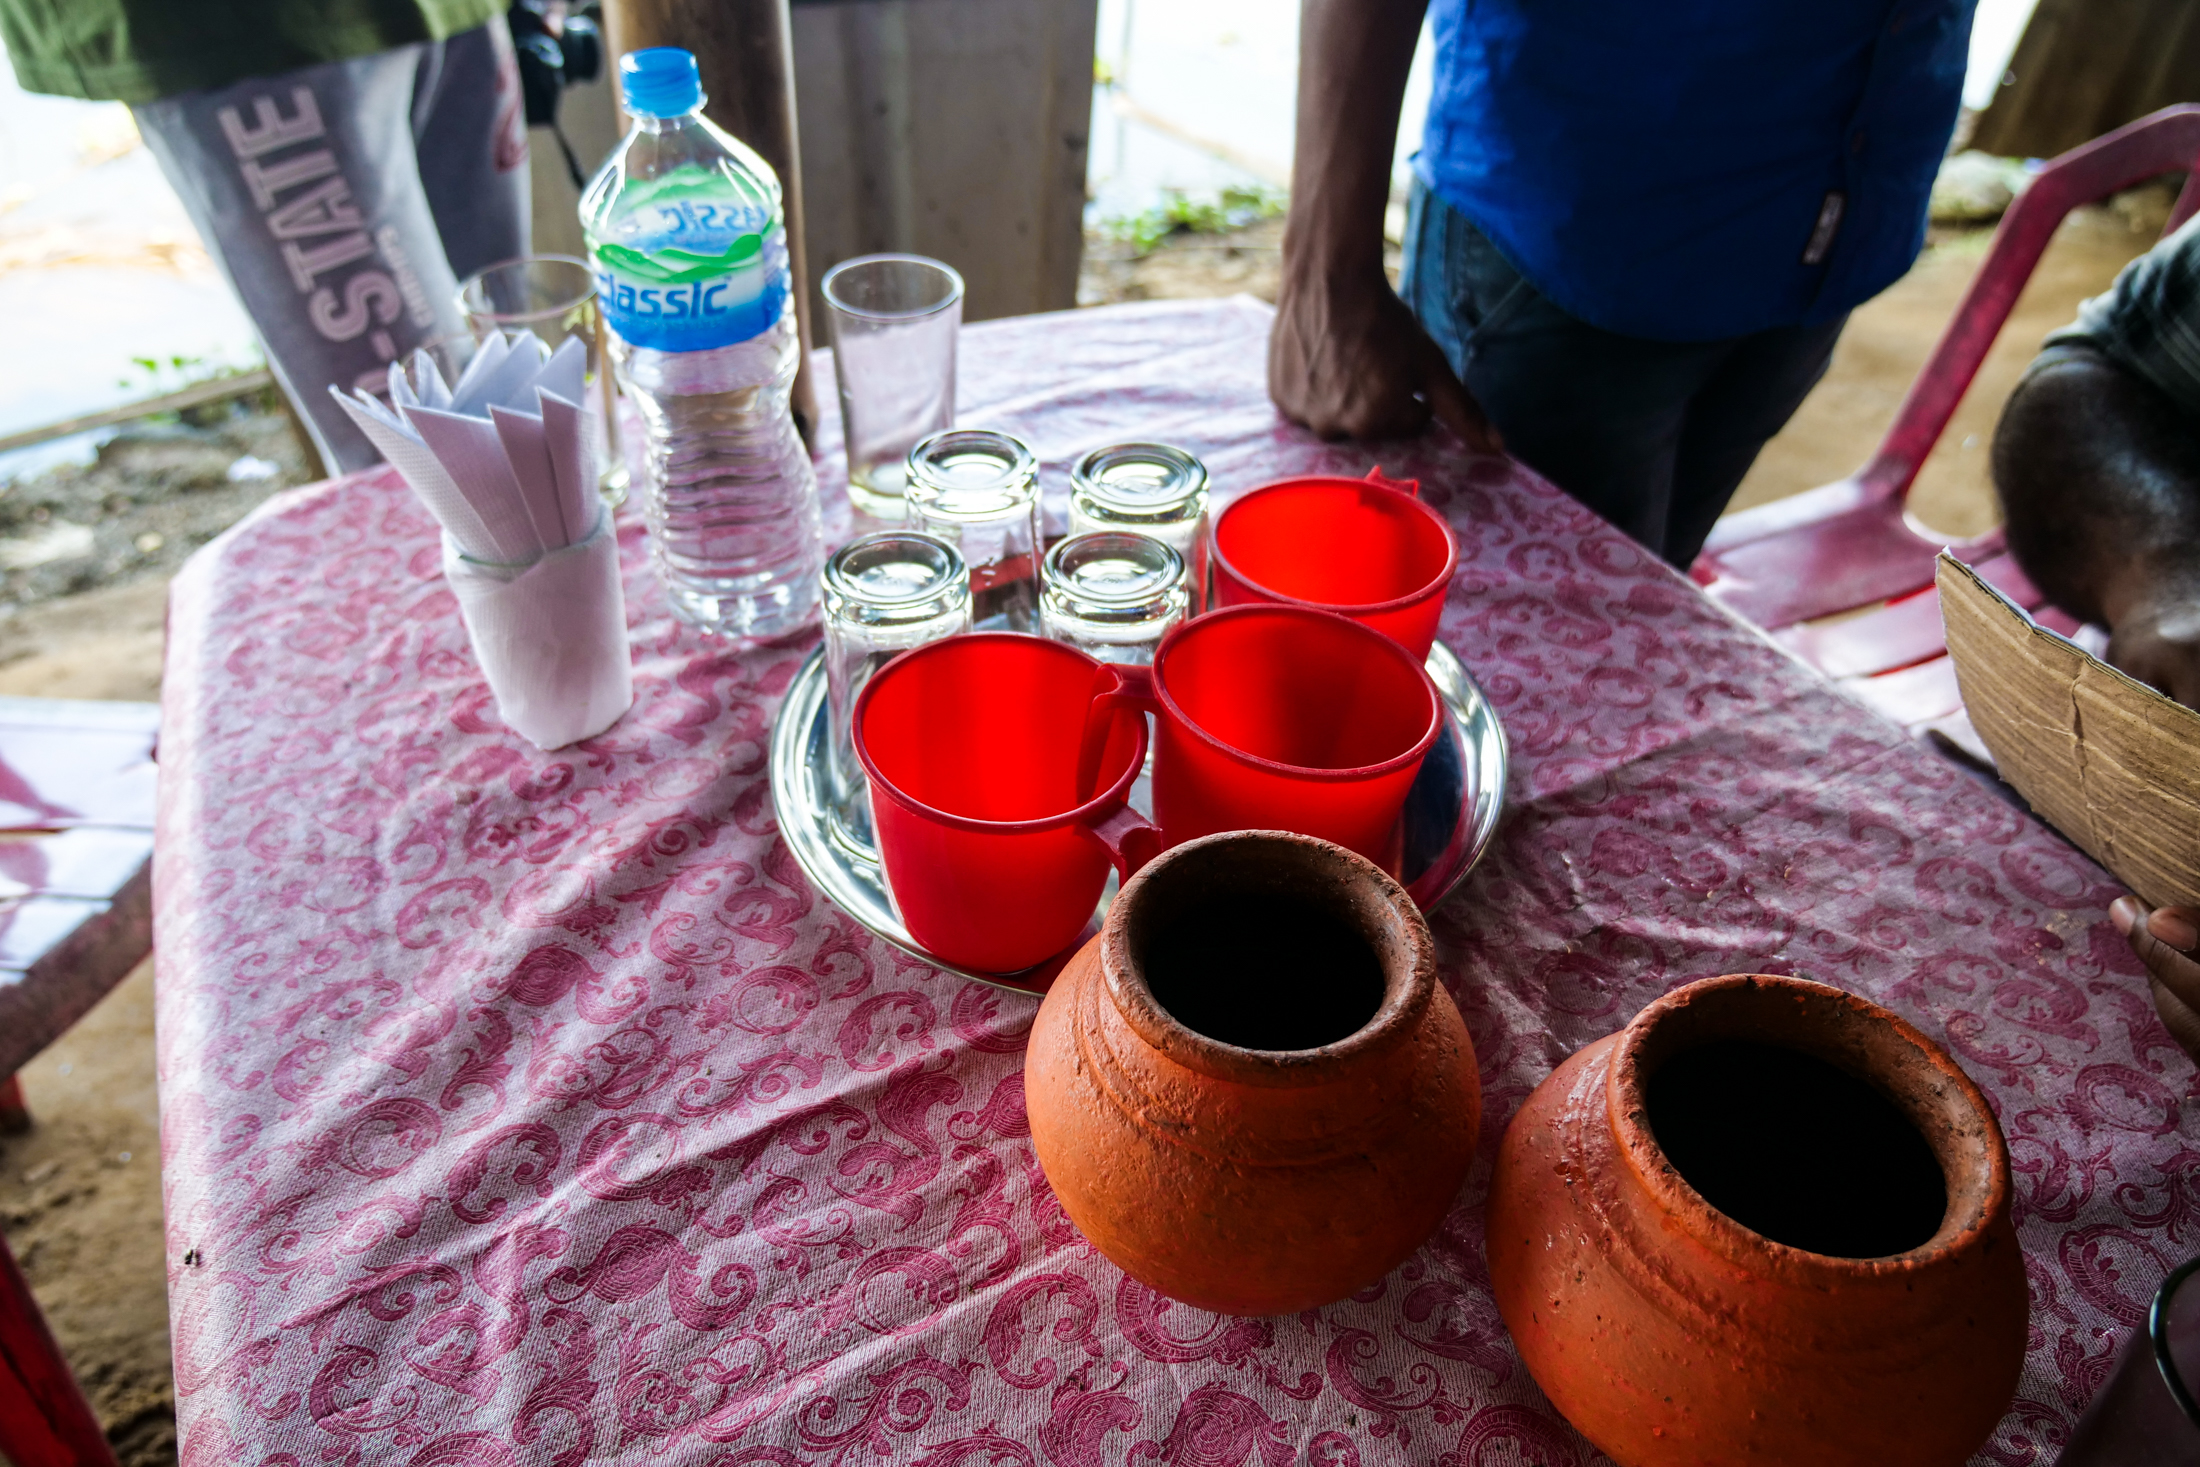 Coconut Toddy requires high levels of cleanliness and hygiene to ensure its not contaminated before drinking